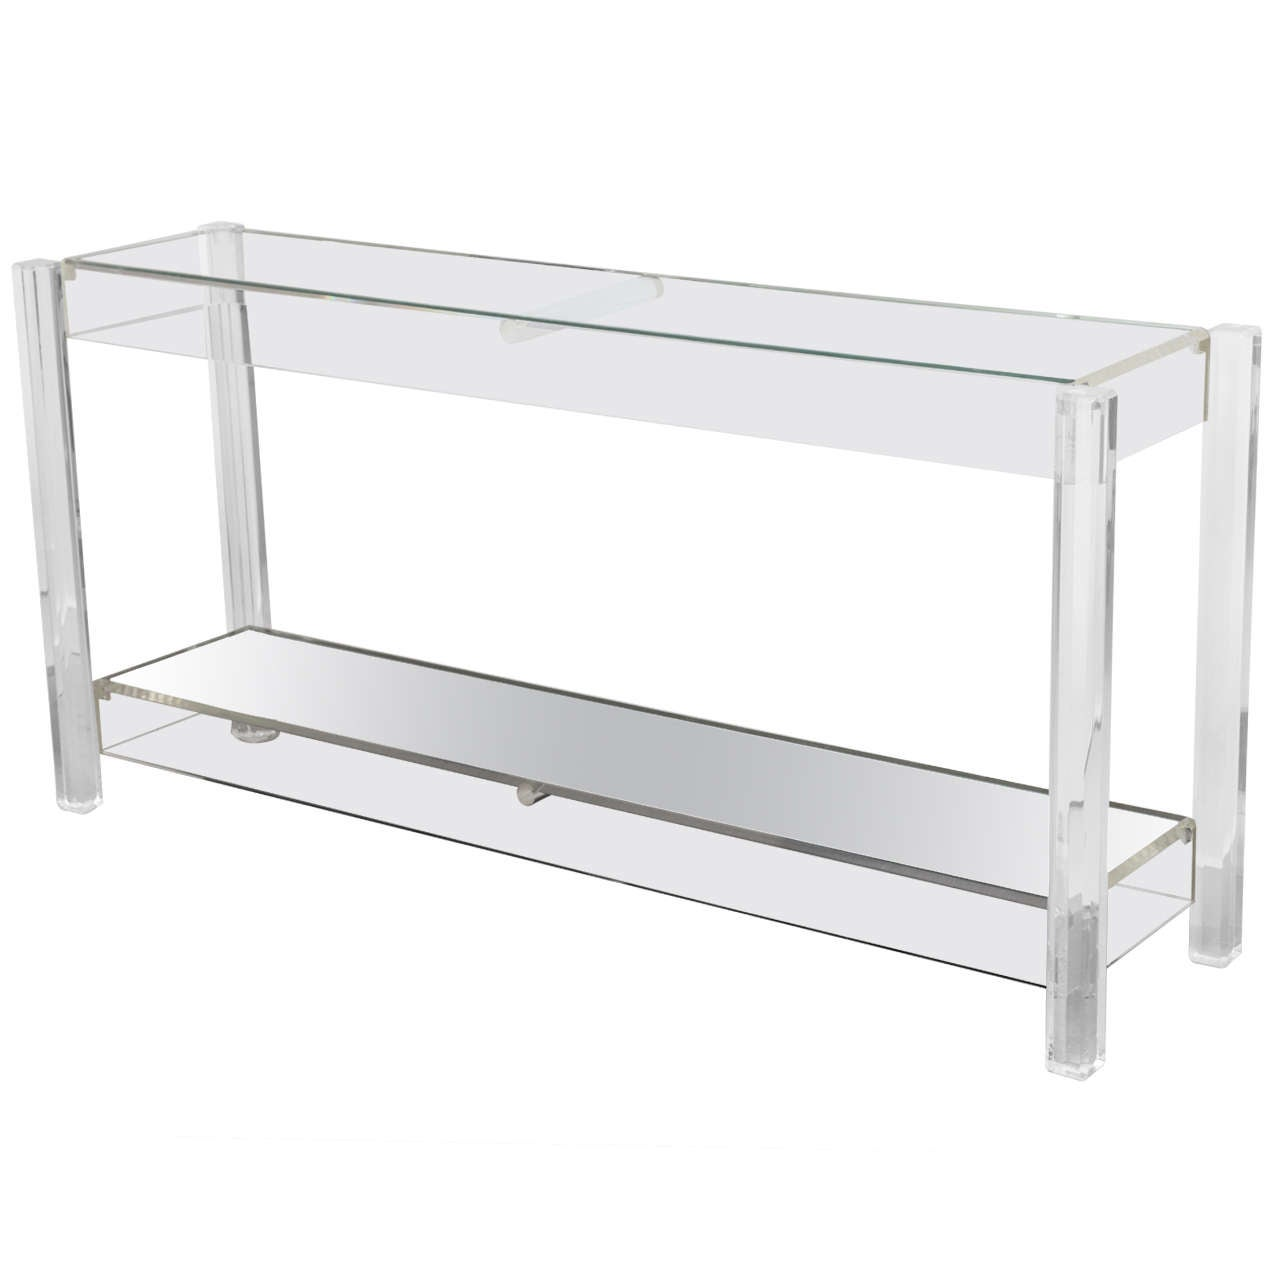 Vintage lucite console table at 1stdibs vintage lucite console table 1 geotapseo Choice Image